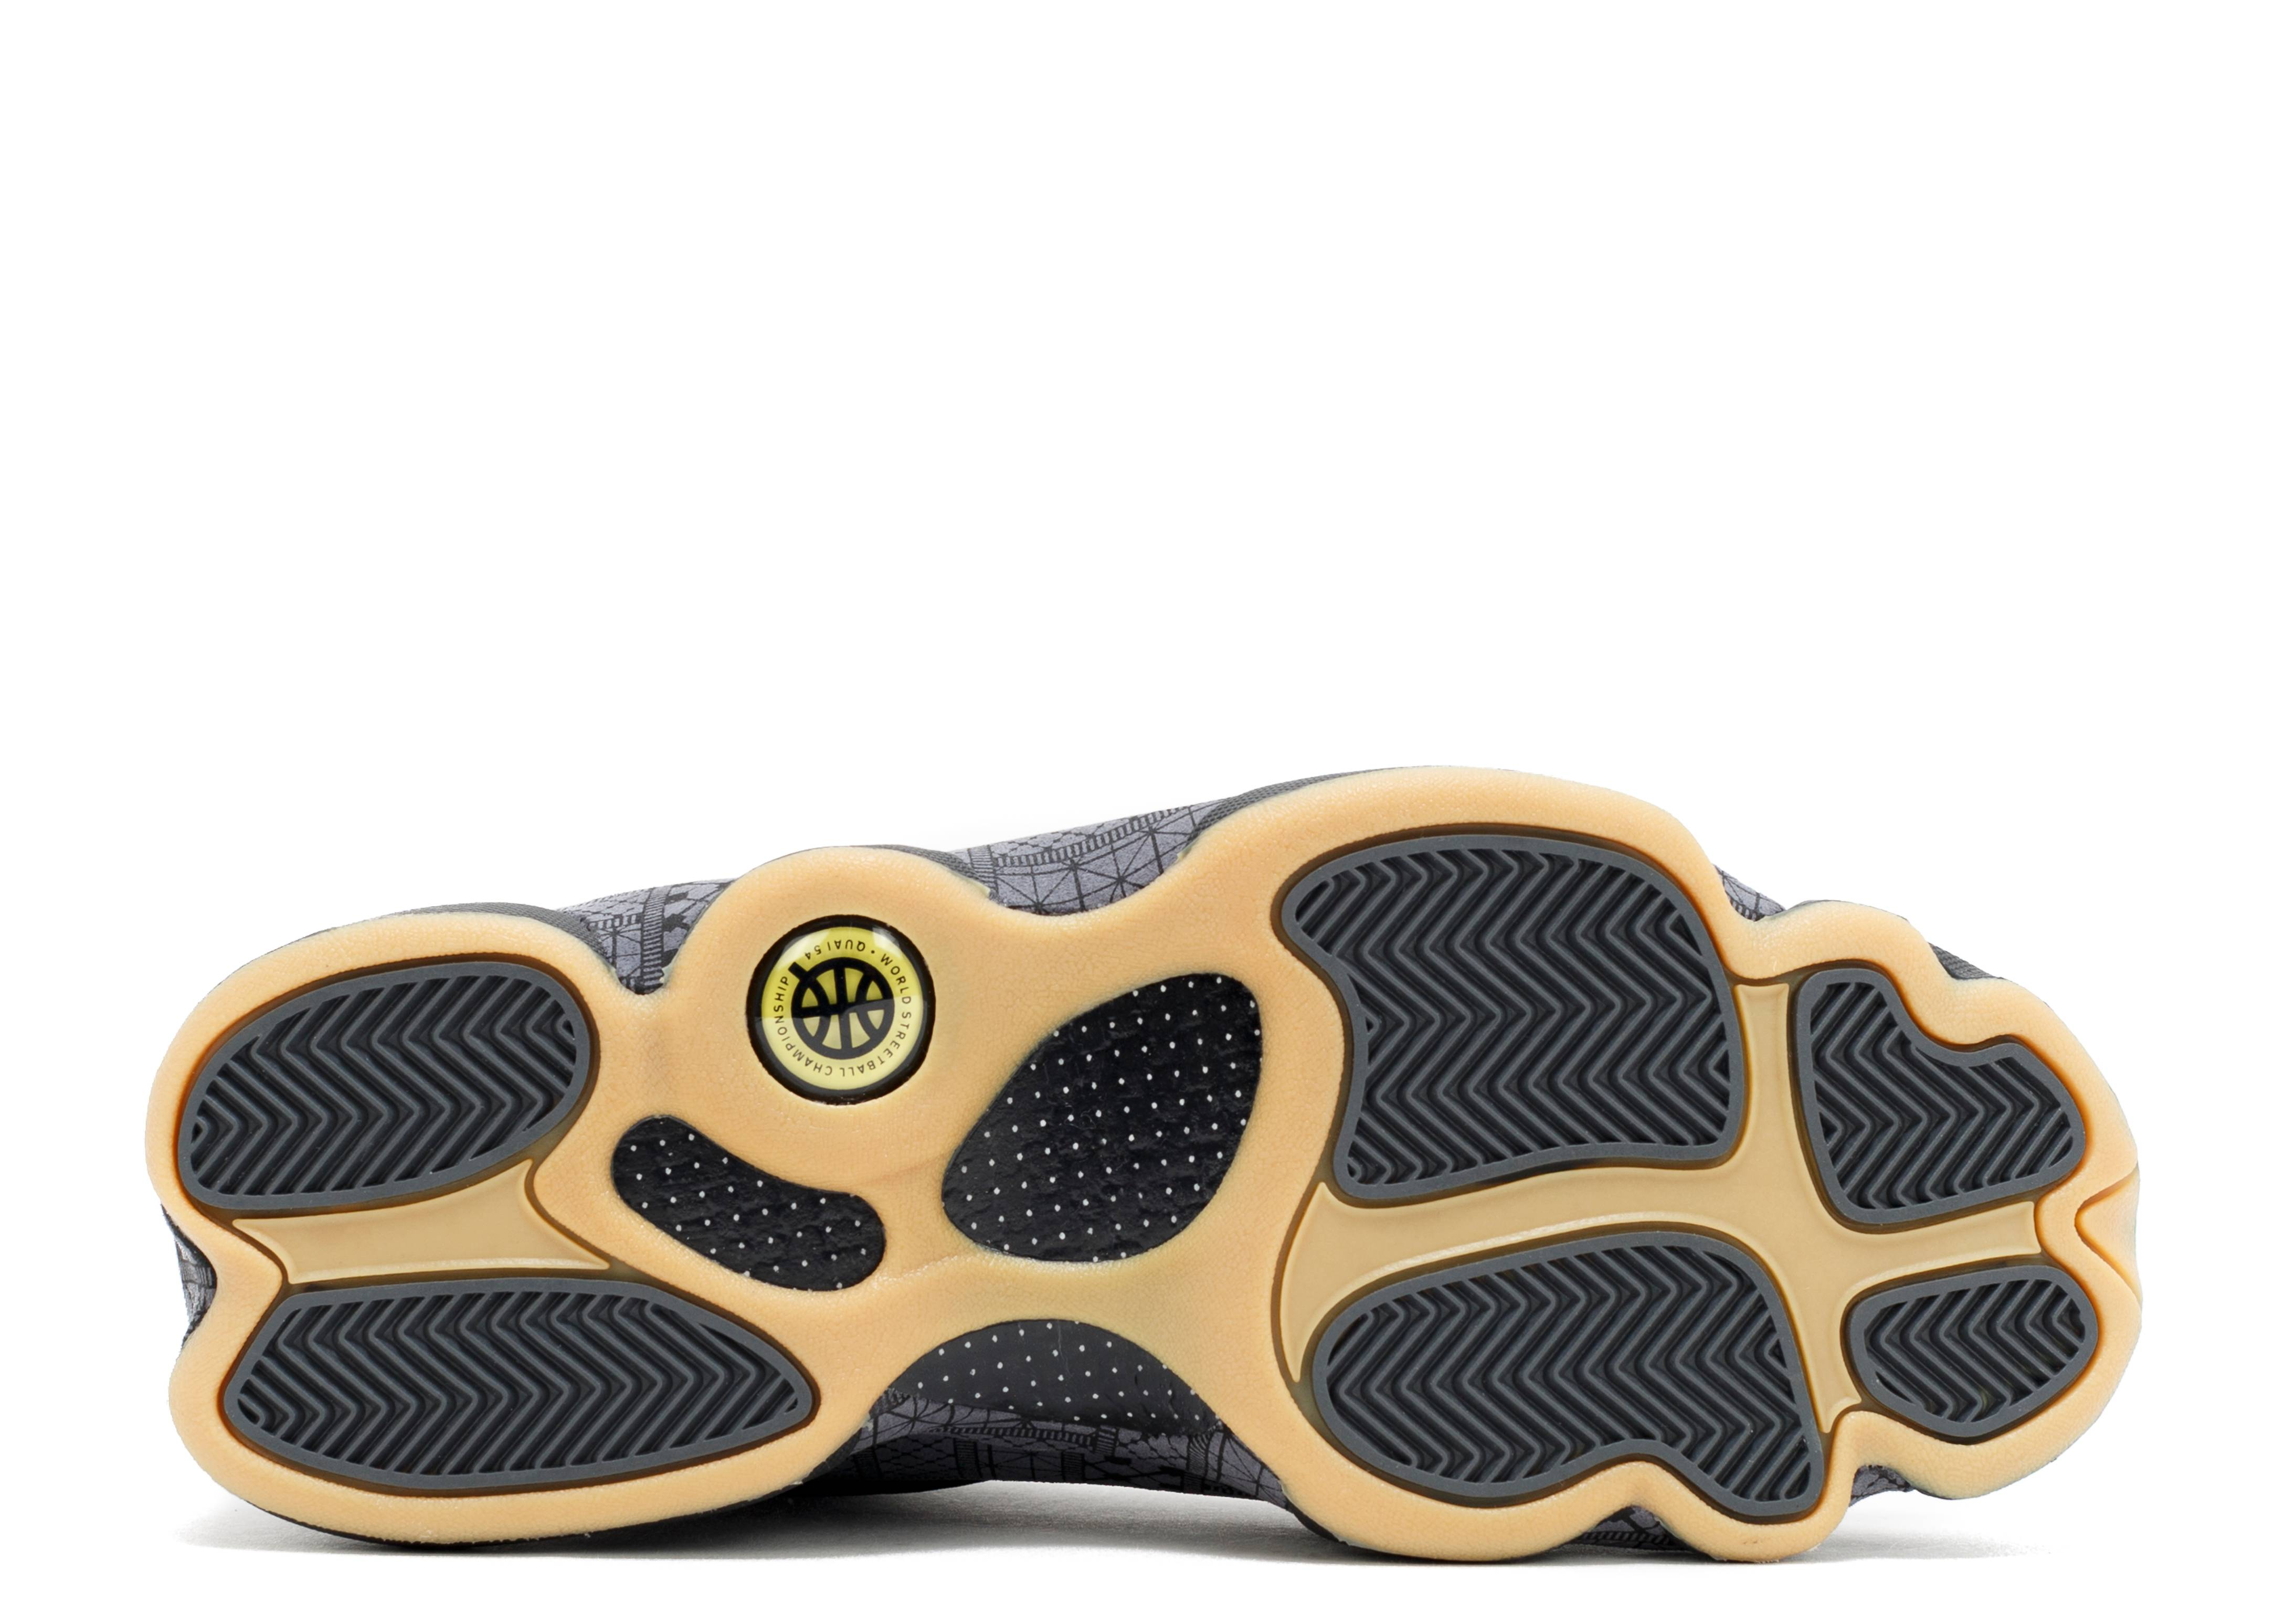 air jordan 13 retro low q54 \u0026quot;quai 54\u0026quot;